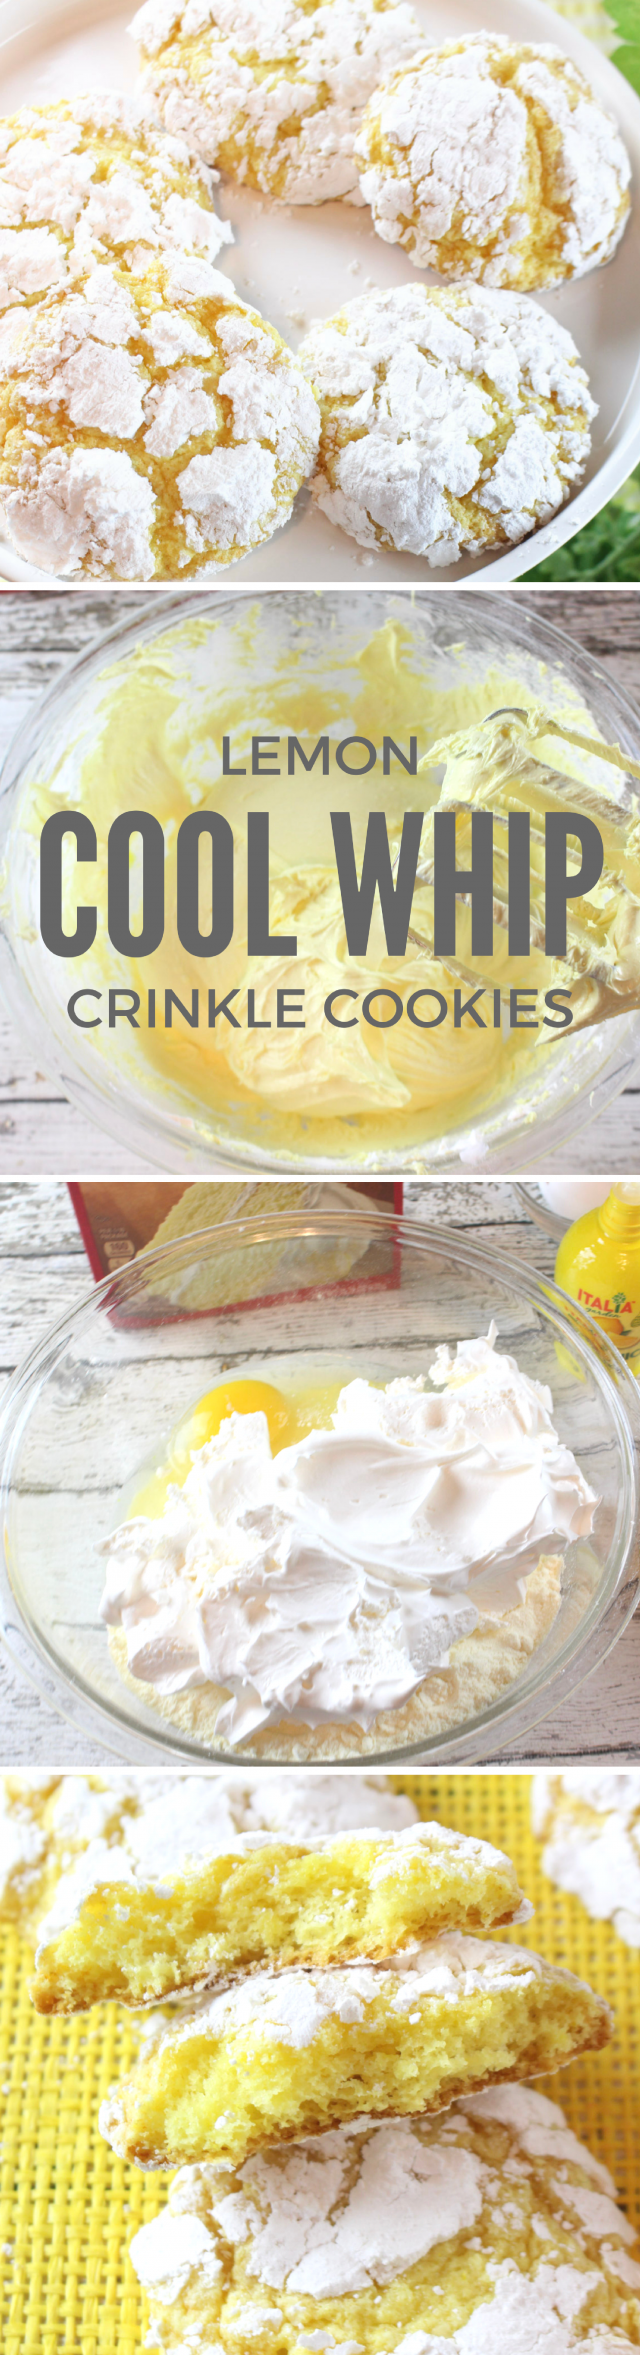 Lemon Crinkle Cool Whip Cookies Recipe